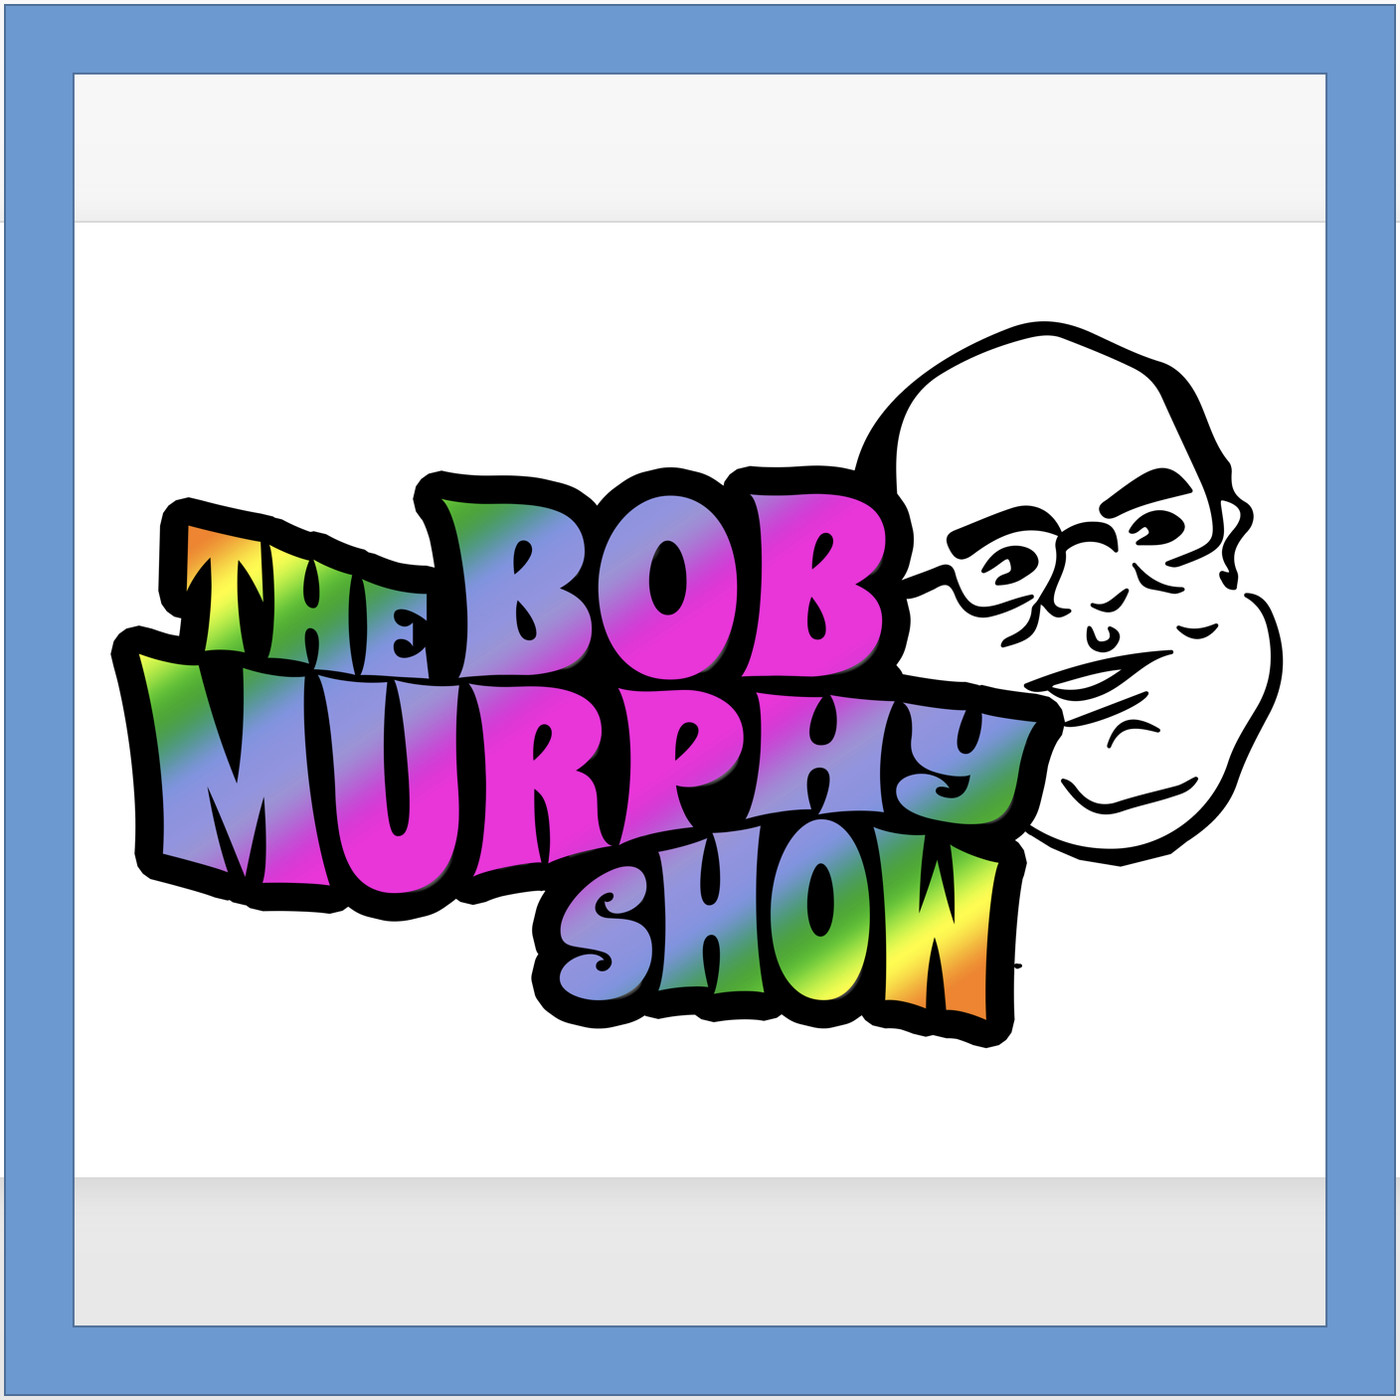 Ep. 156 Econtradictions: Bob Discusses Free Trade, Welfare Benefits, Price Gouging, and Utility Theory